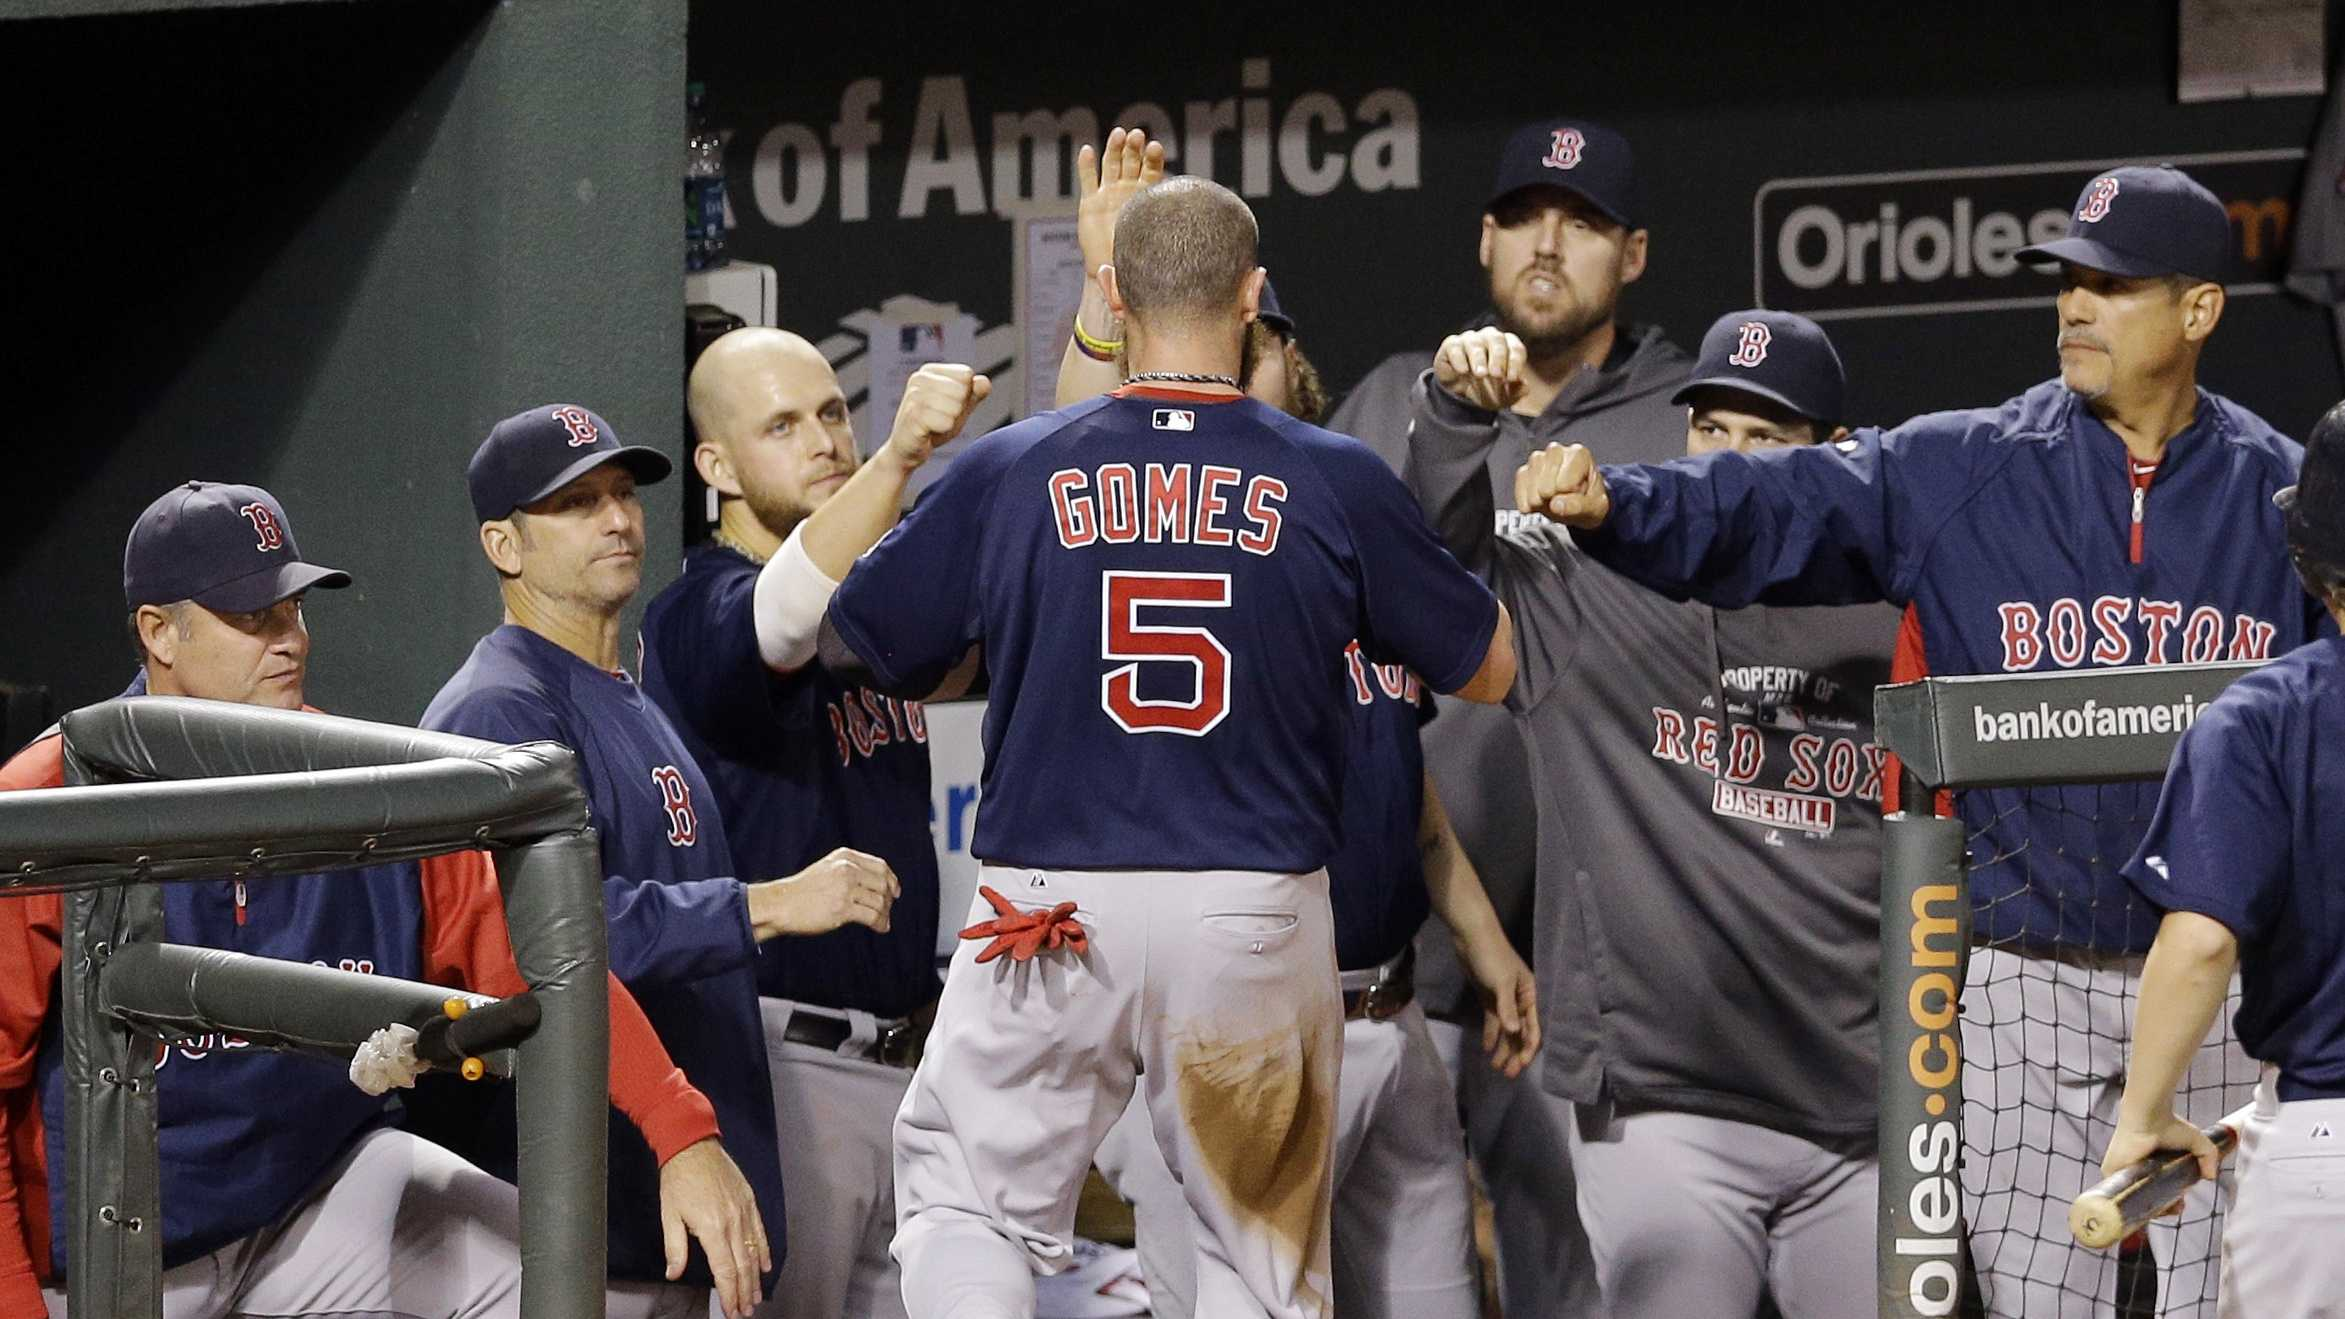 Boston Red Sox Jonny Gomes is greeted by teammates in the dugout after scoring on a single by David Ross in the fourth inning of a baseball game against the Baltimore Orioles, Sept. 28, 2013, in Baltimore.